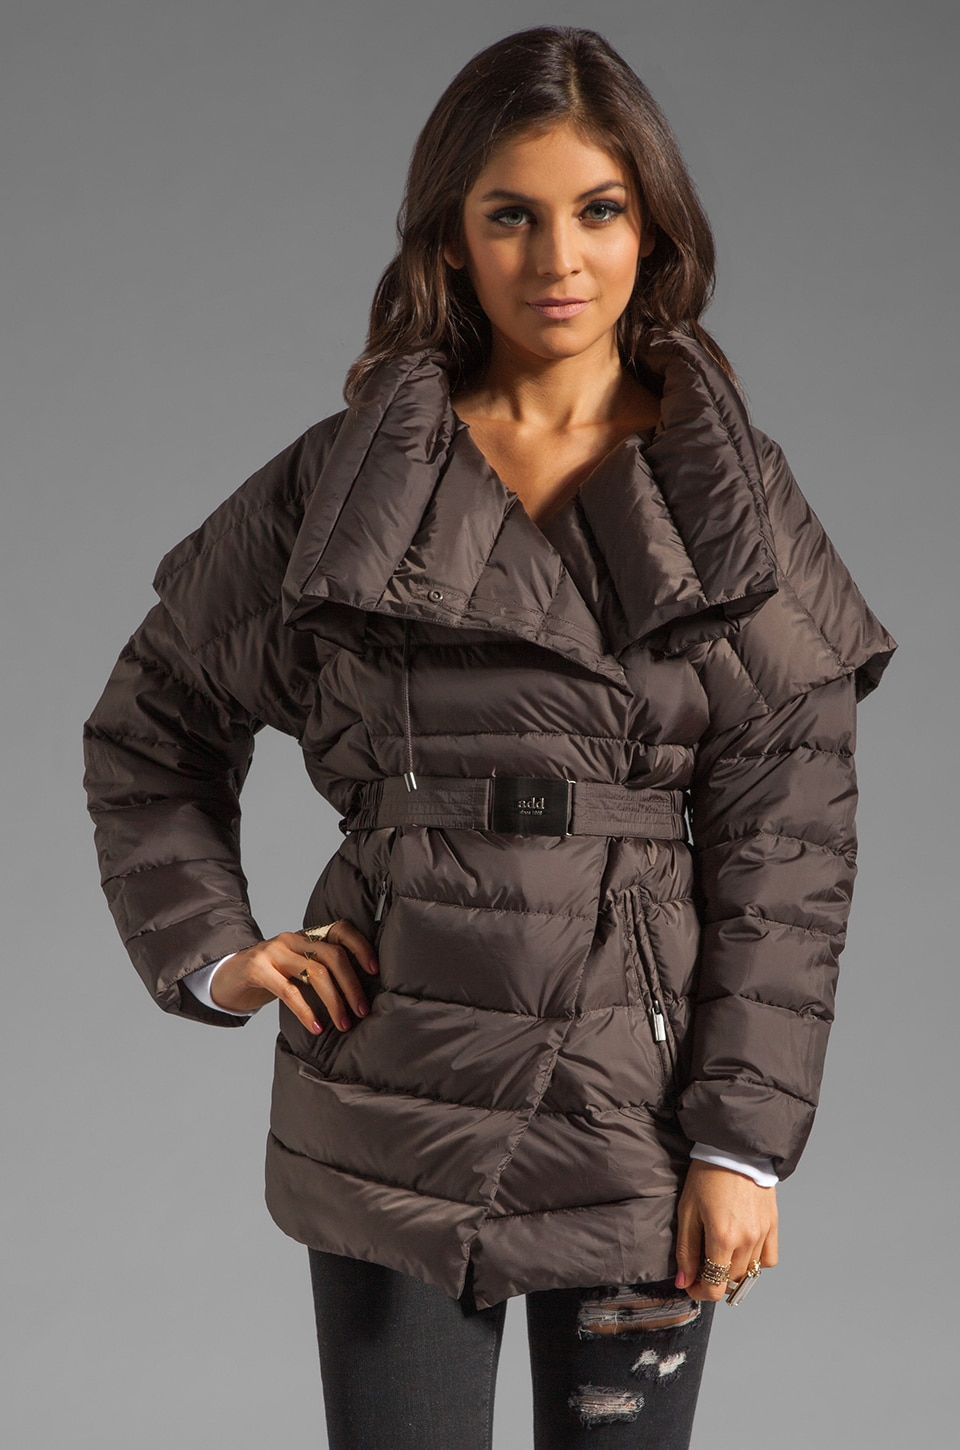 ADD Removable Sleeve Down Jacket in Hazel